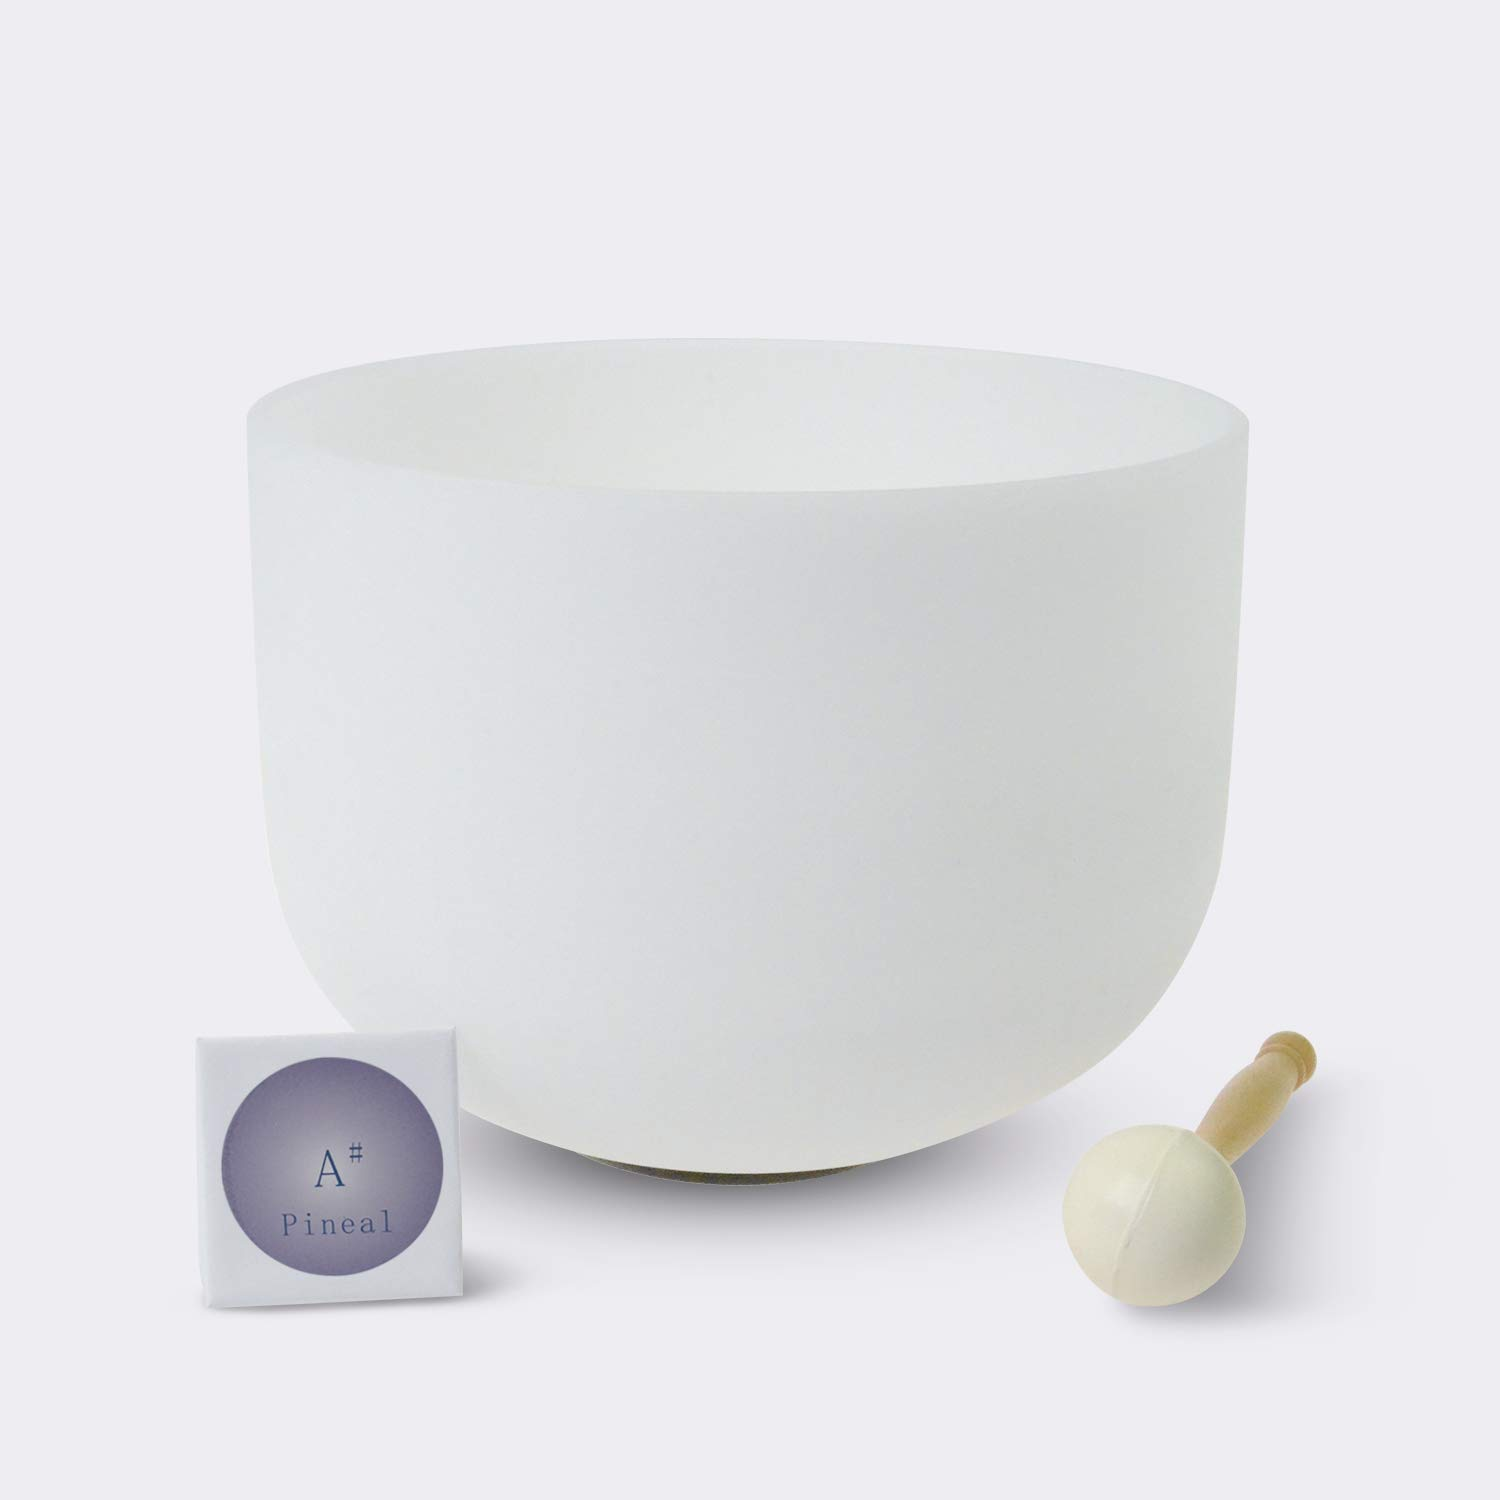 #6 THIRD EYE PINEAL A Note Crystal Singing Bowl - O-Ring and Rubber Mallet Included. American quartz made crystal singing bowls,The highest quality standards and the best quality crystal singing bowls in the world made by TOPFUND